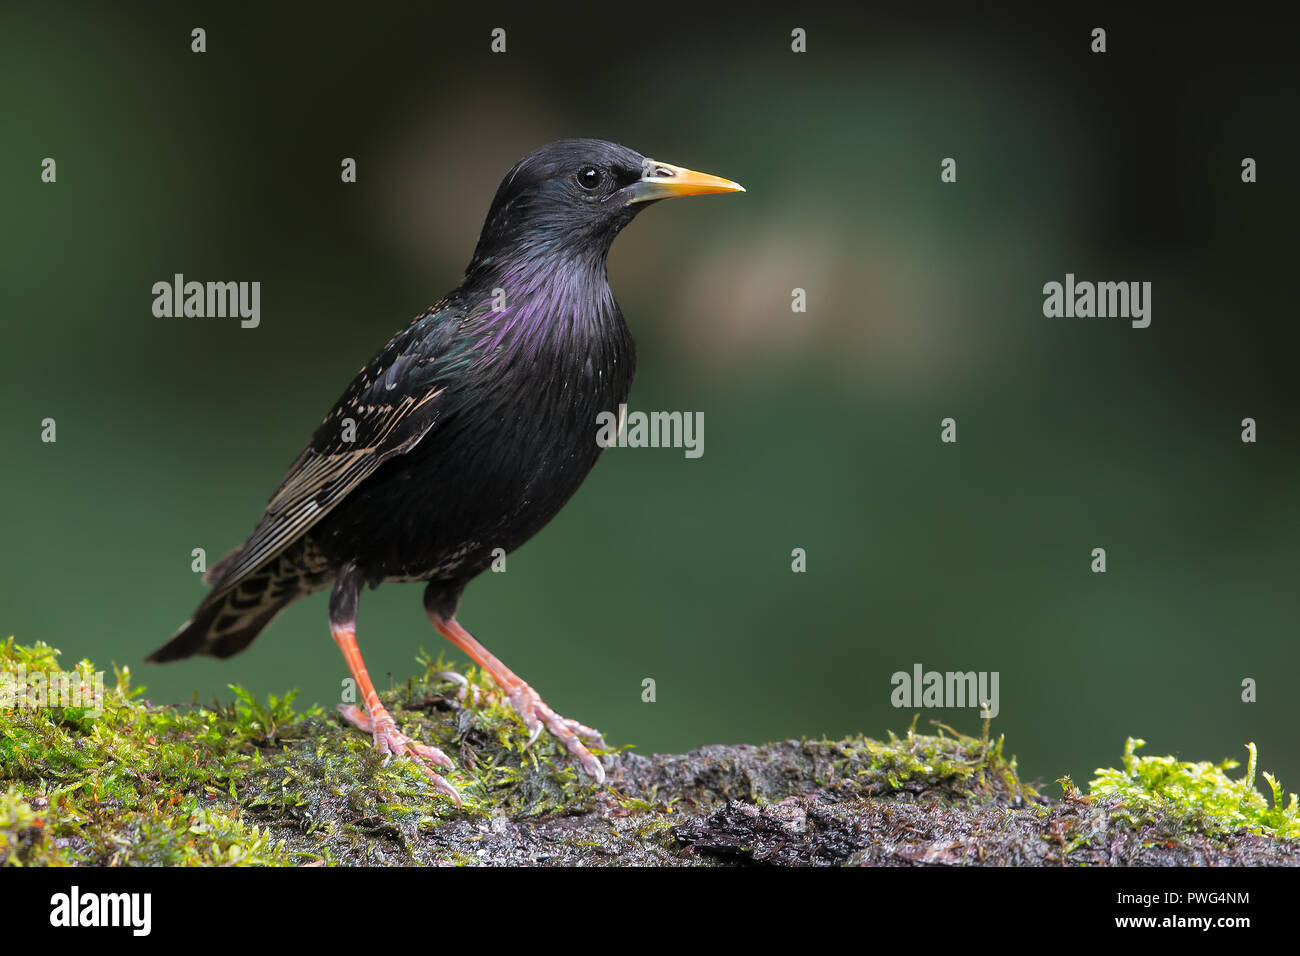 Common starling - Stock Image